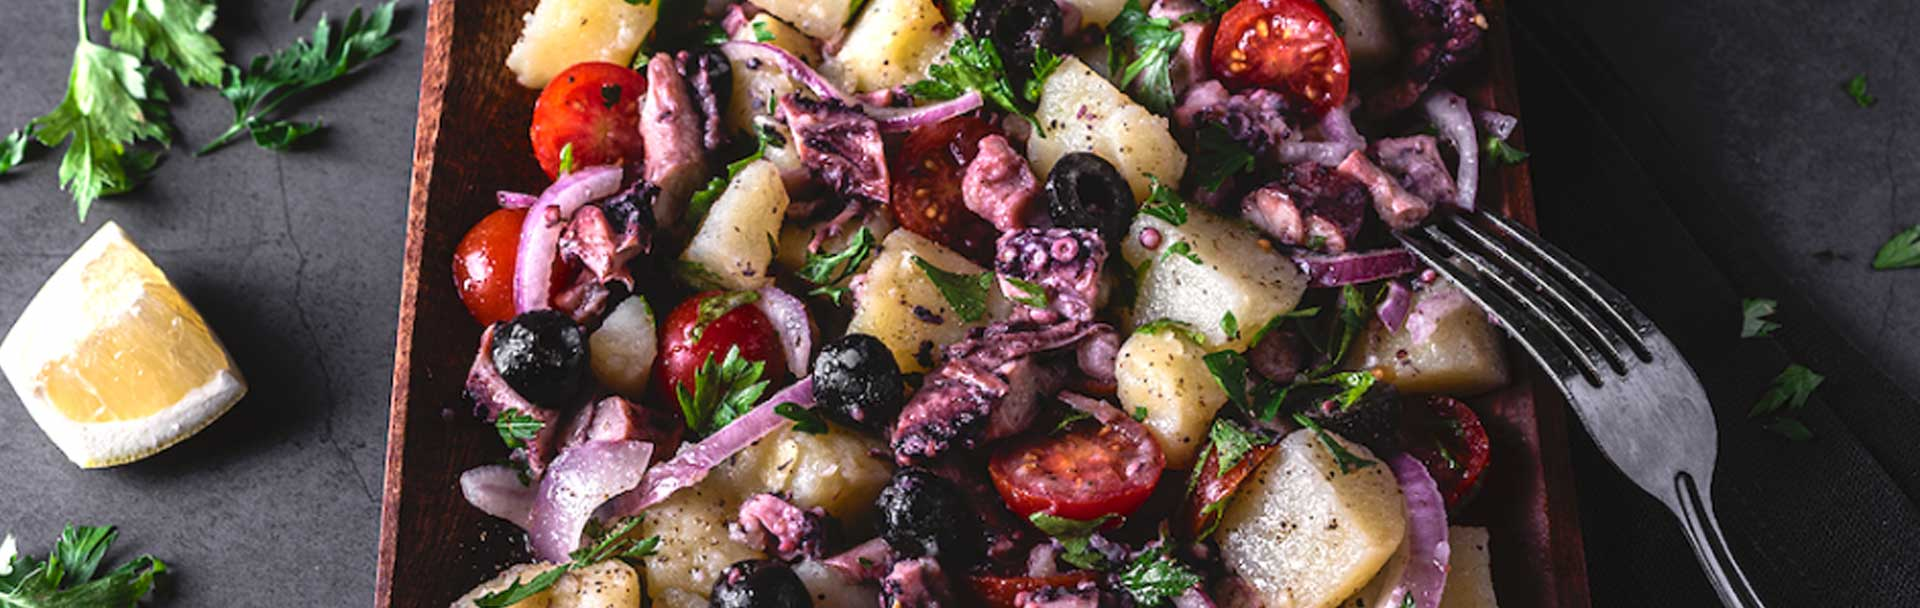 Octopus salad recipe with potatoes tomatoes and onions